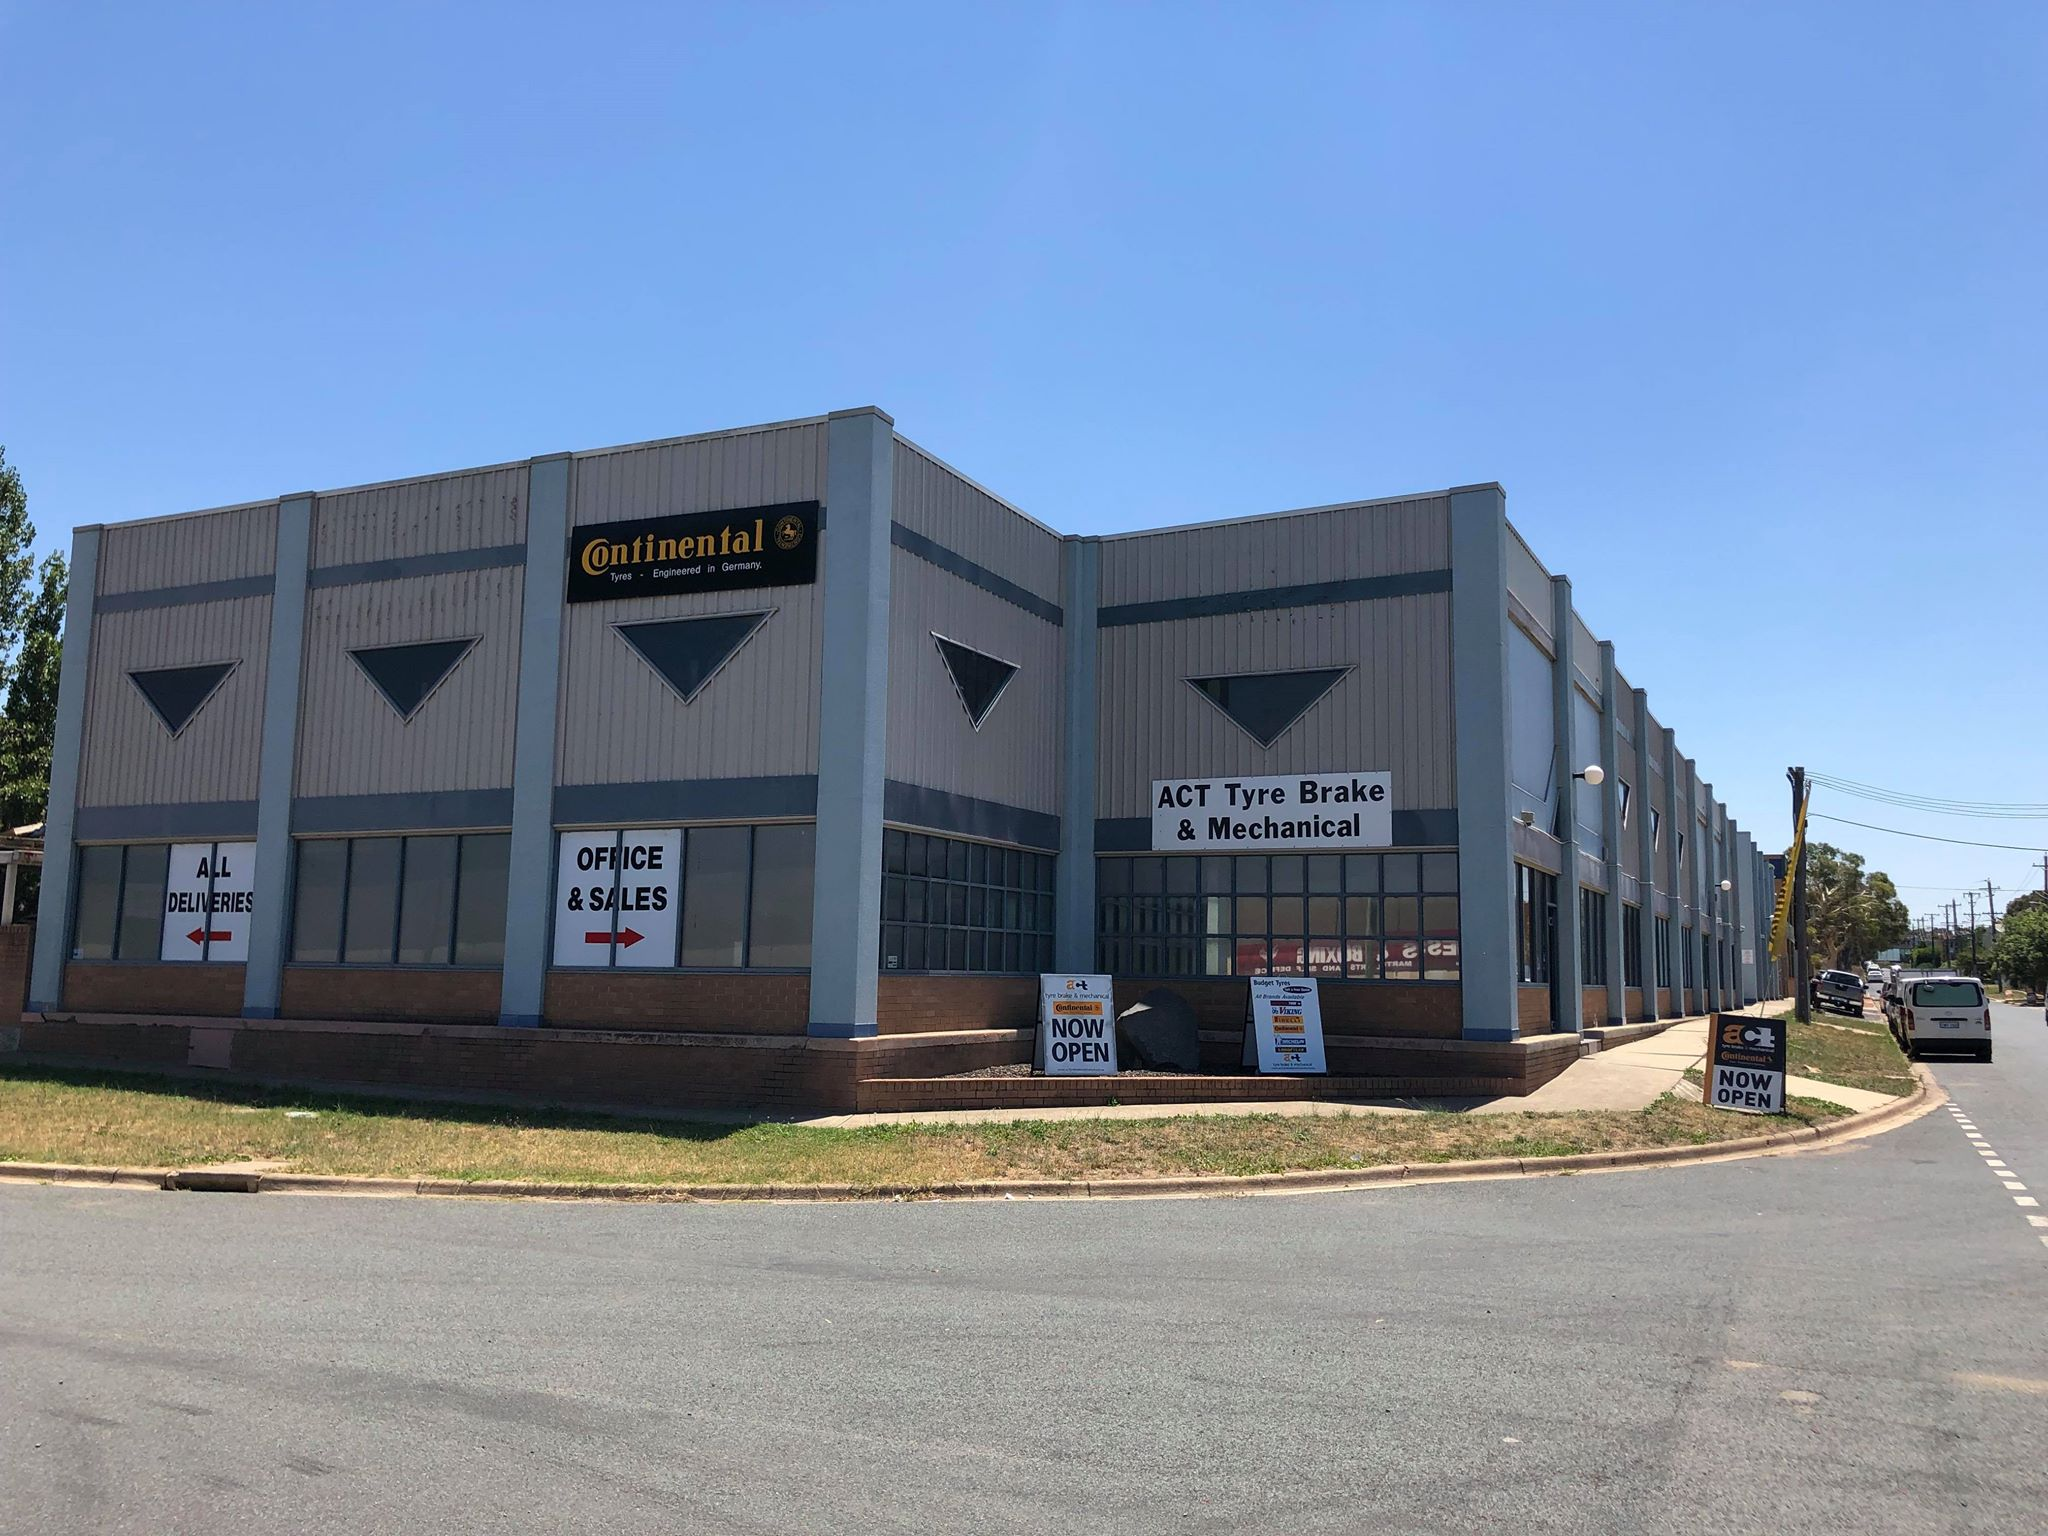 act tyre brake & mechanical mitchell tyre store